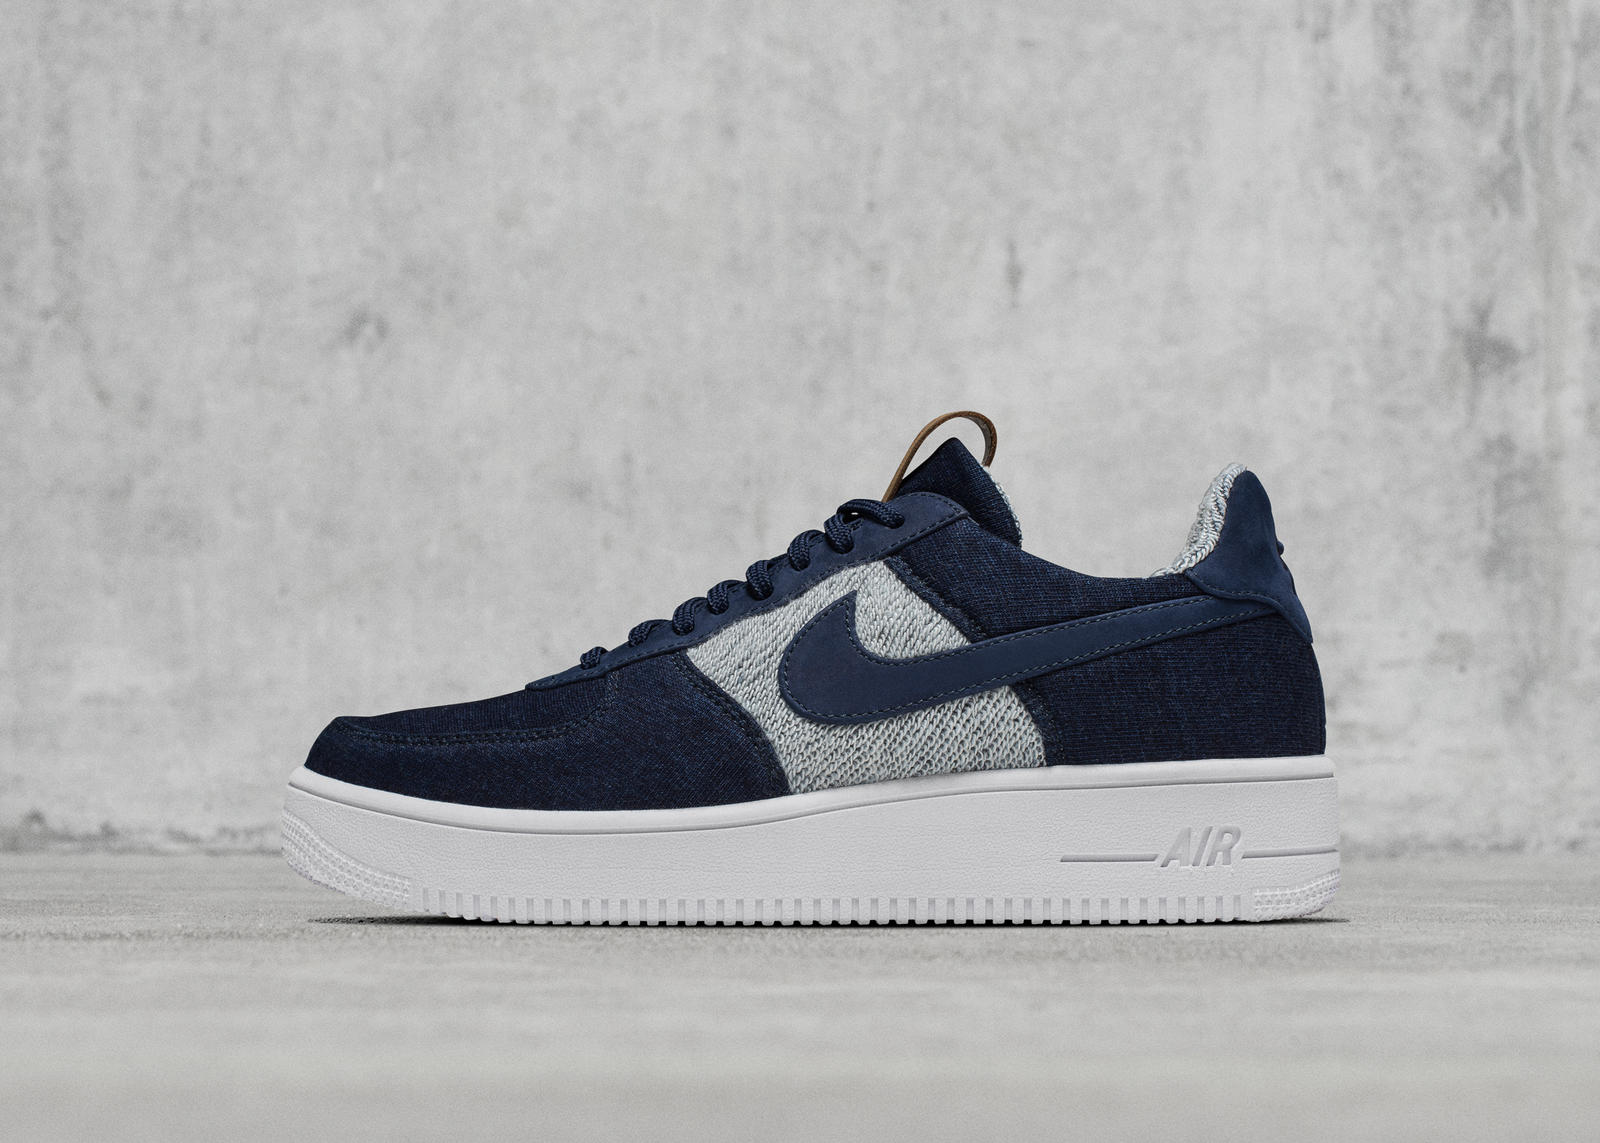 927180e99864 NikeLab Collaborates with Loopwheeler on Indigo-Dyed Footwear - Nike ...